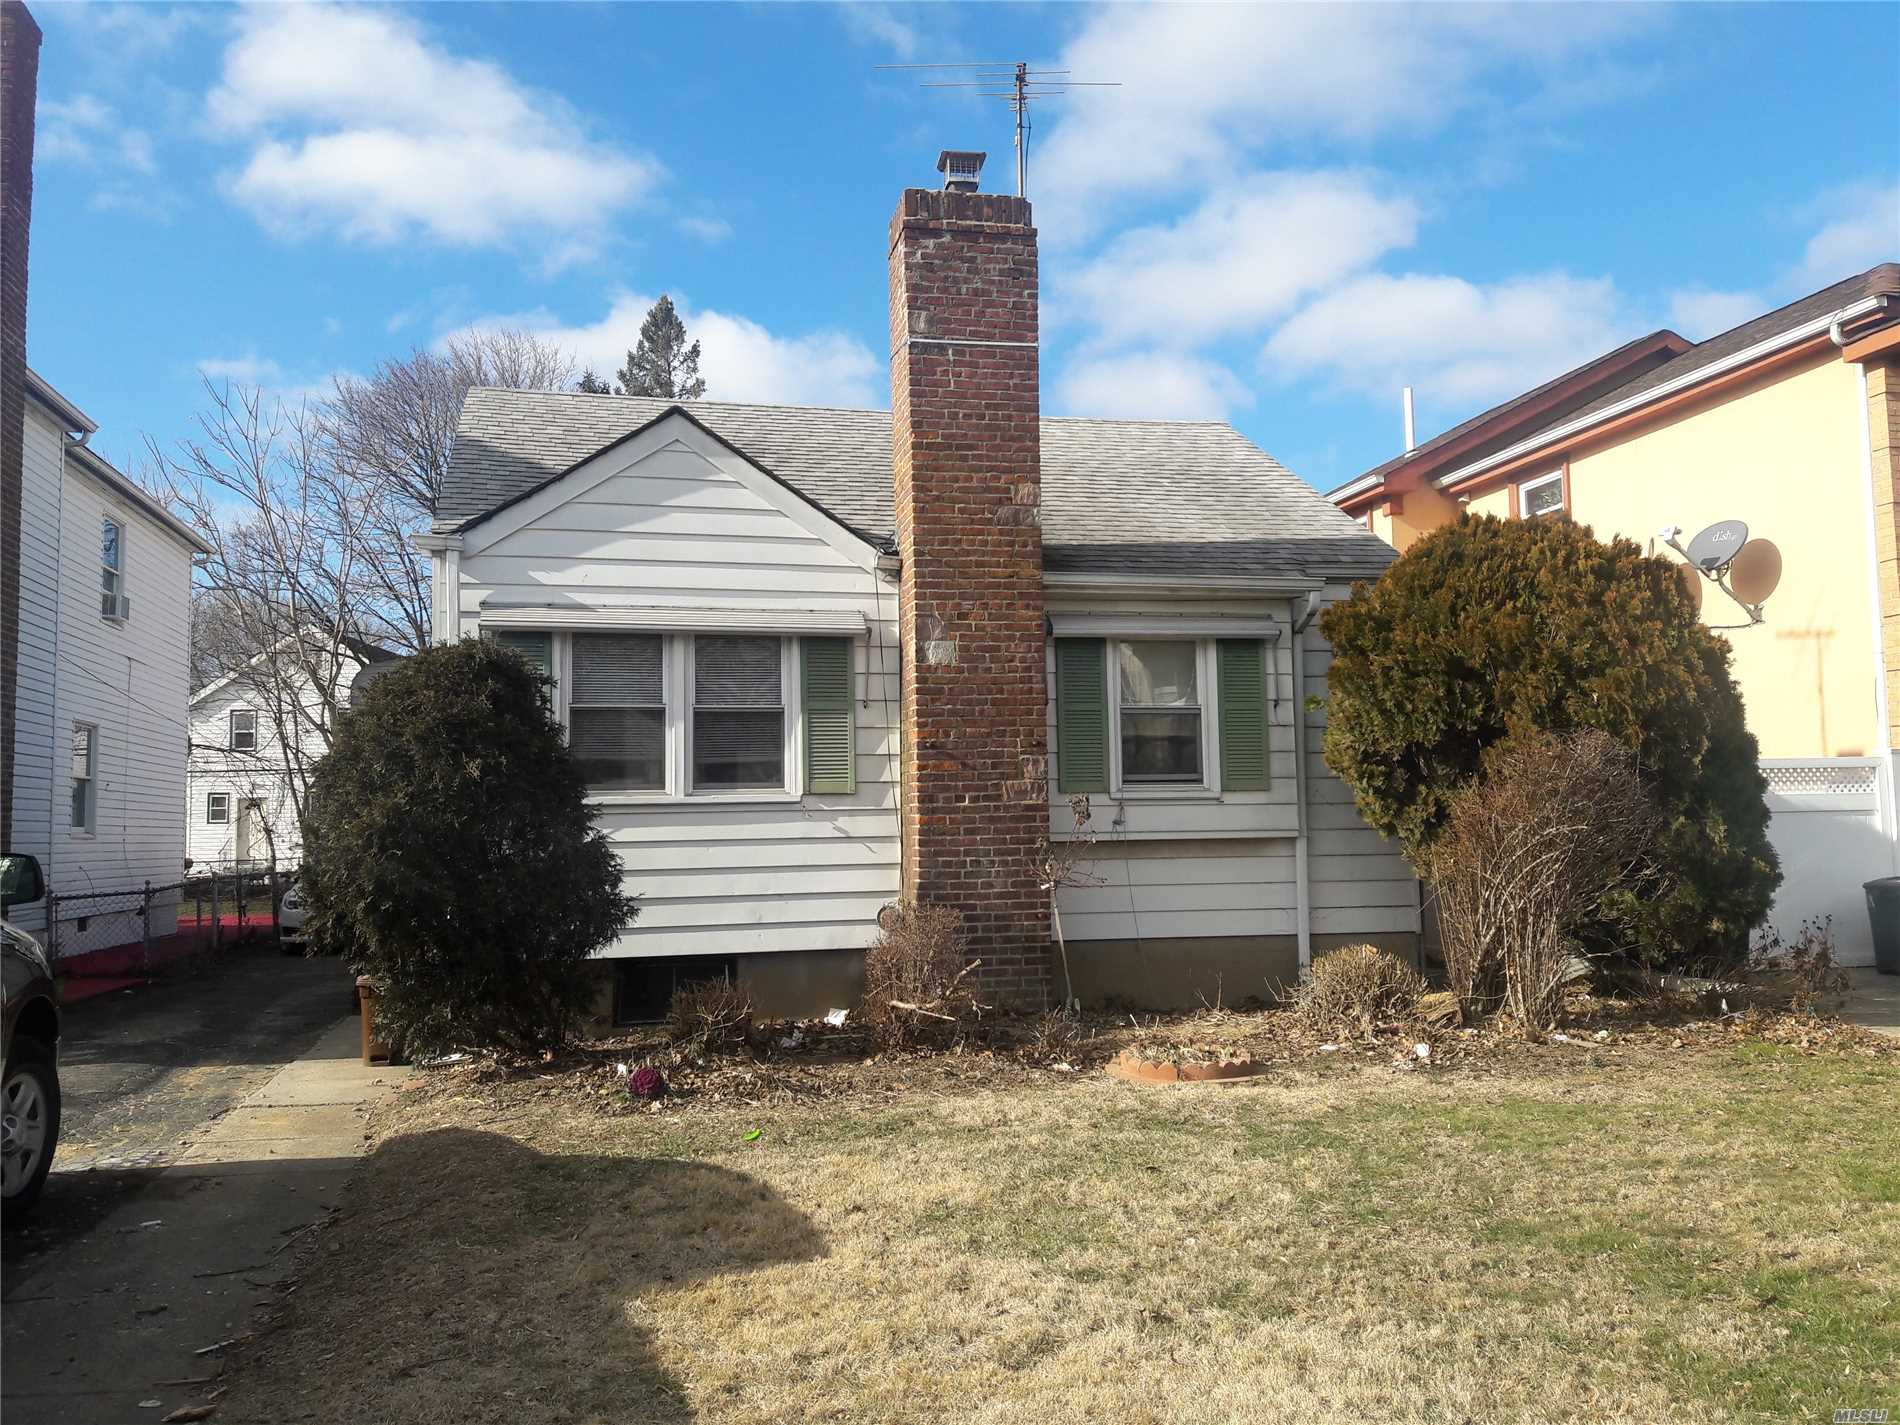 This Home Is A Large Lot. The Zone For This Property R3A And A 2 Family House Is Within The Zone. Great Area. Close To Transportation And Highways. January 21th An Offer Will Be Accepted And Countered.